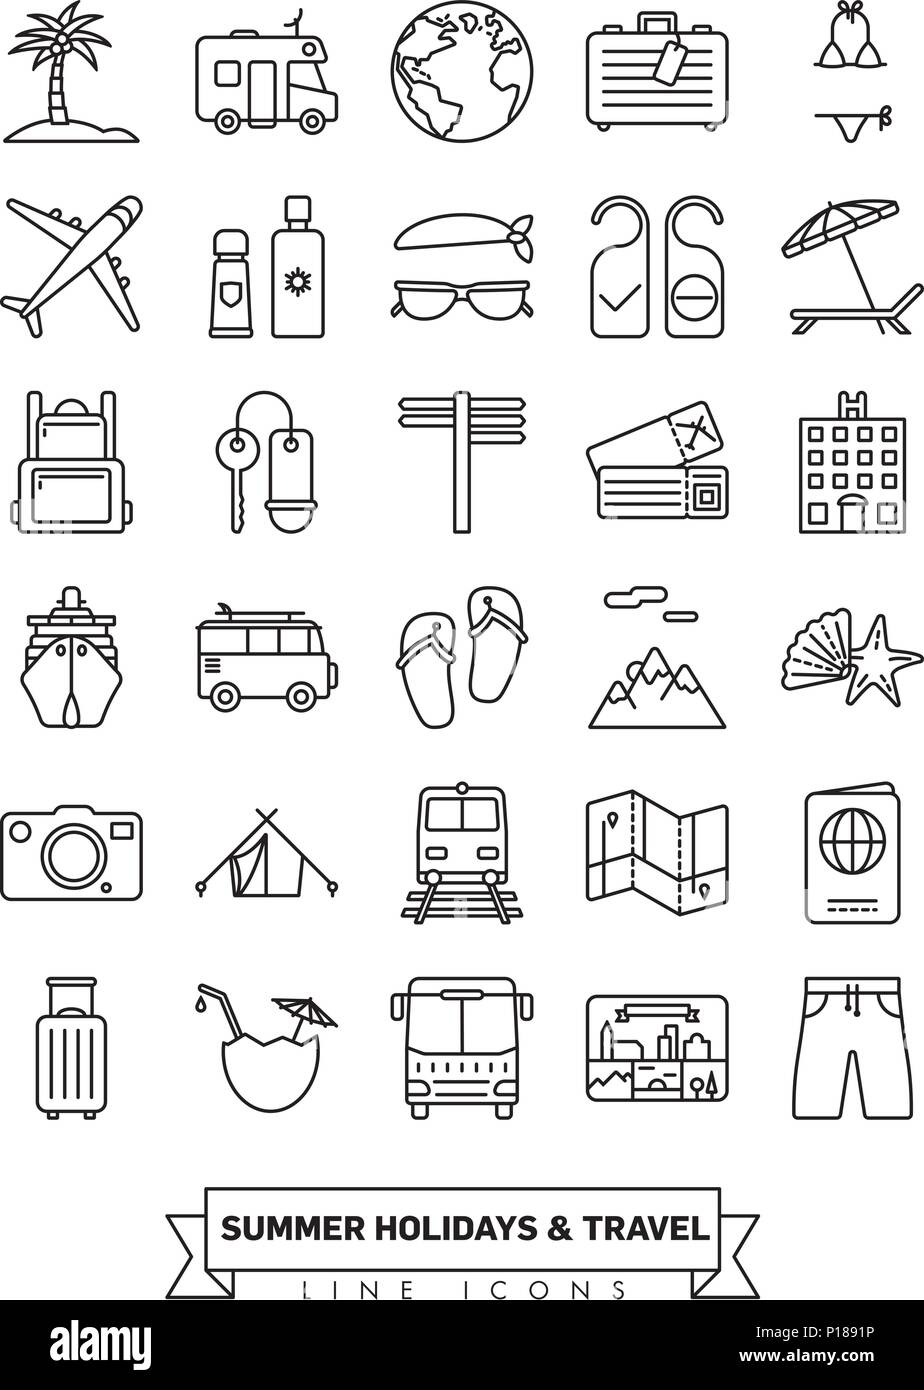 Summer holidays and global travel line icon collection - Stock Vector